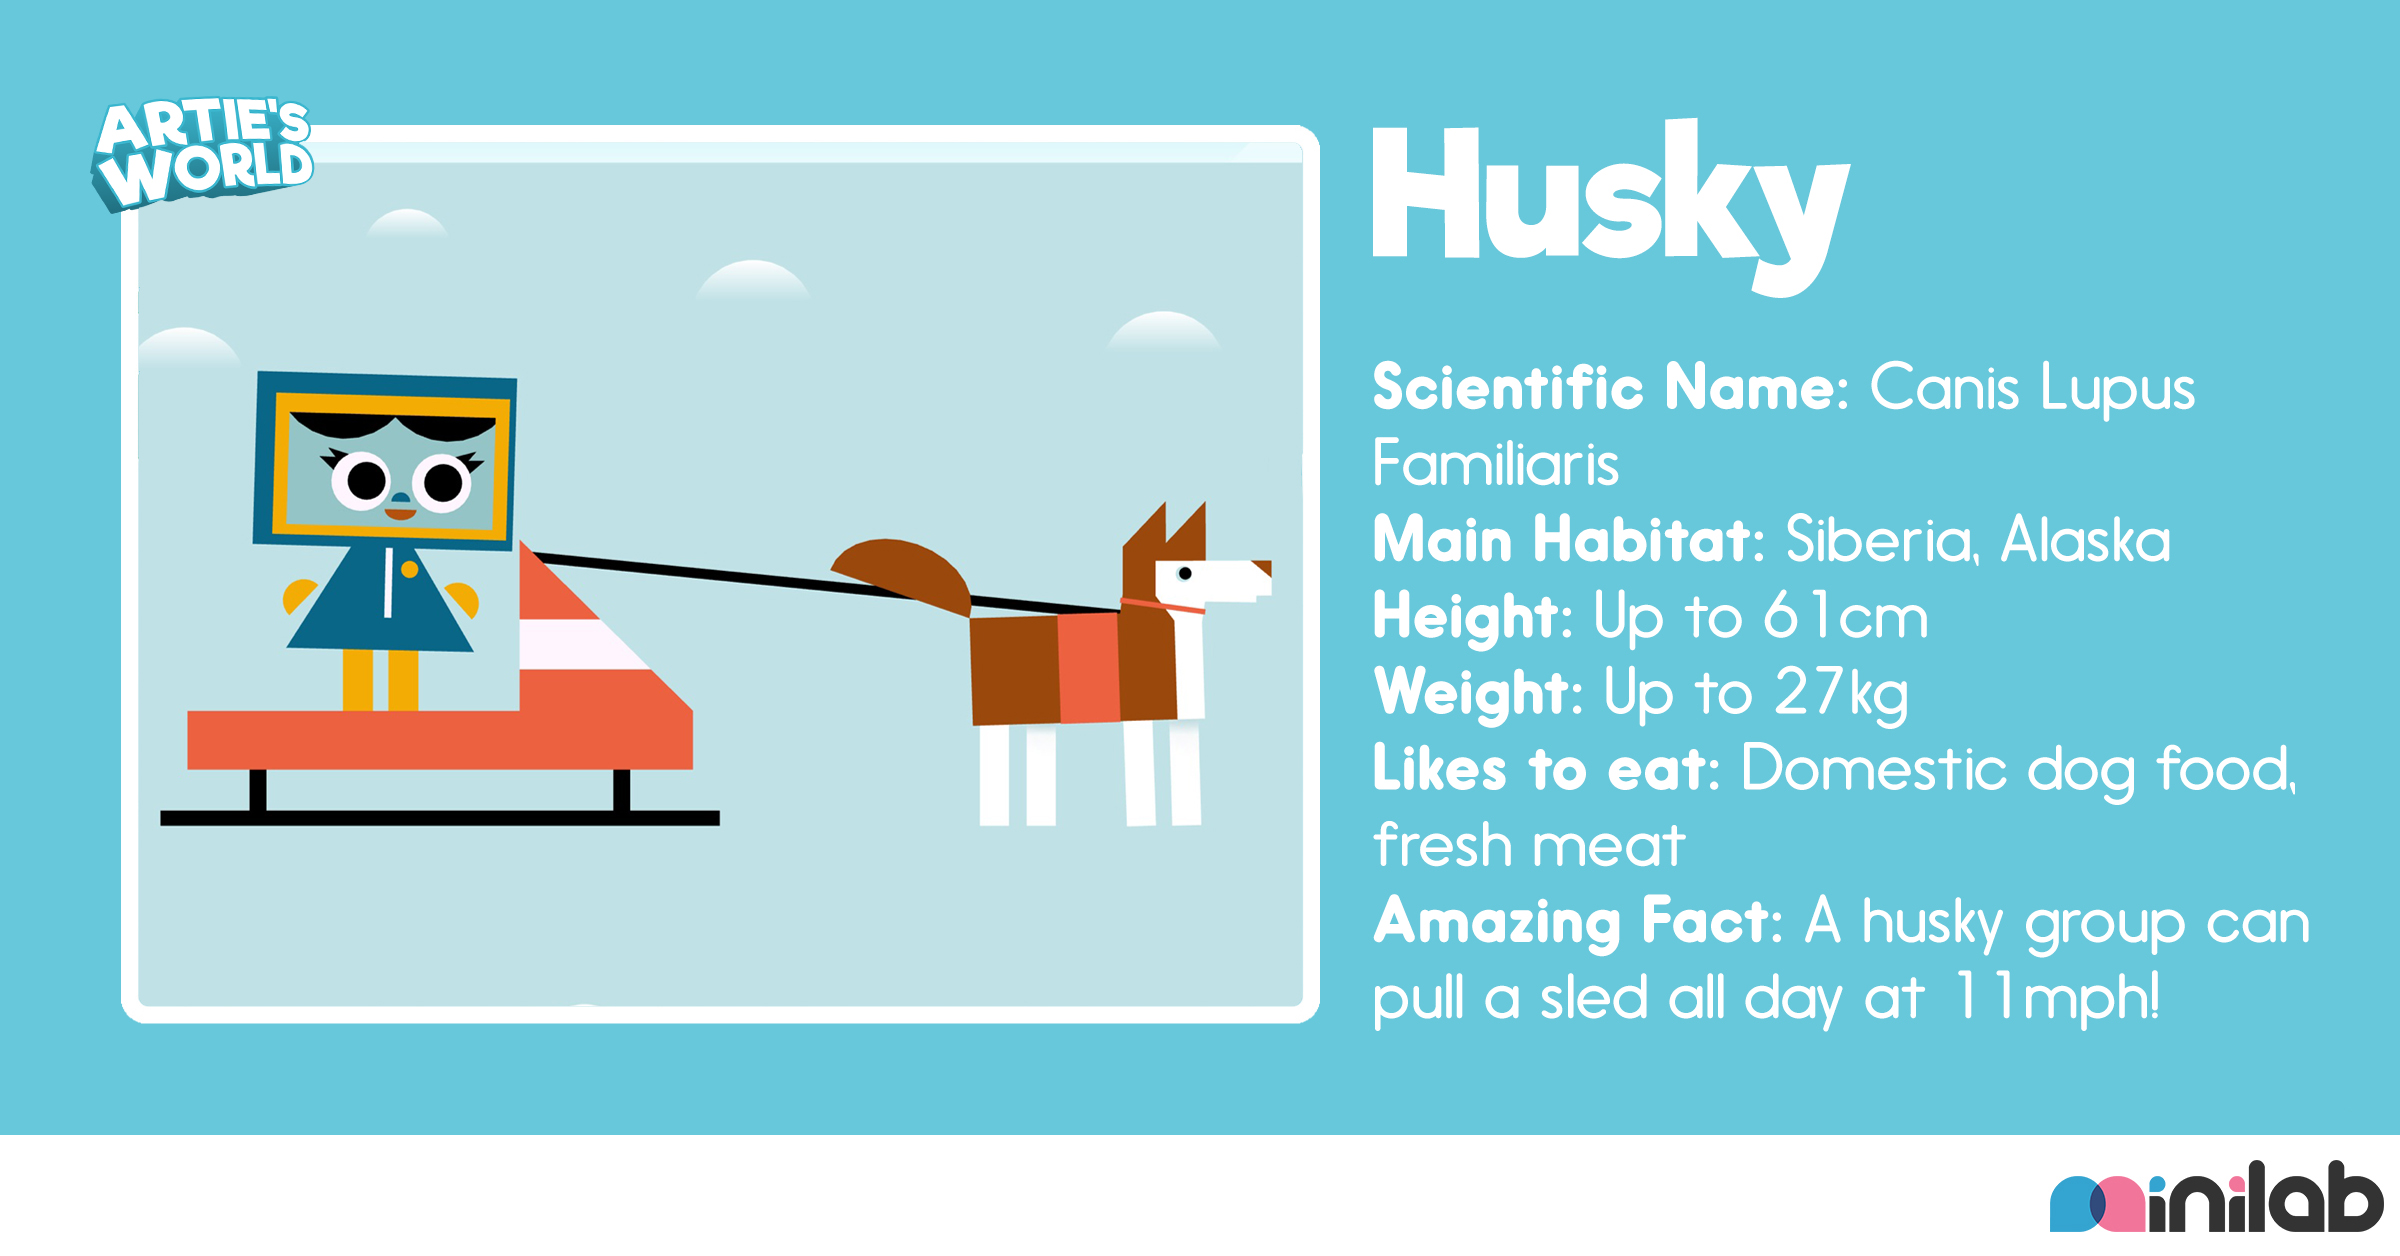 animal-bio-husky